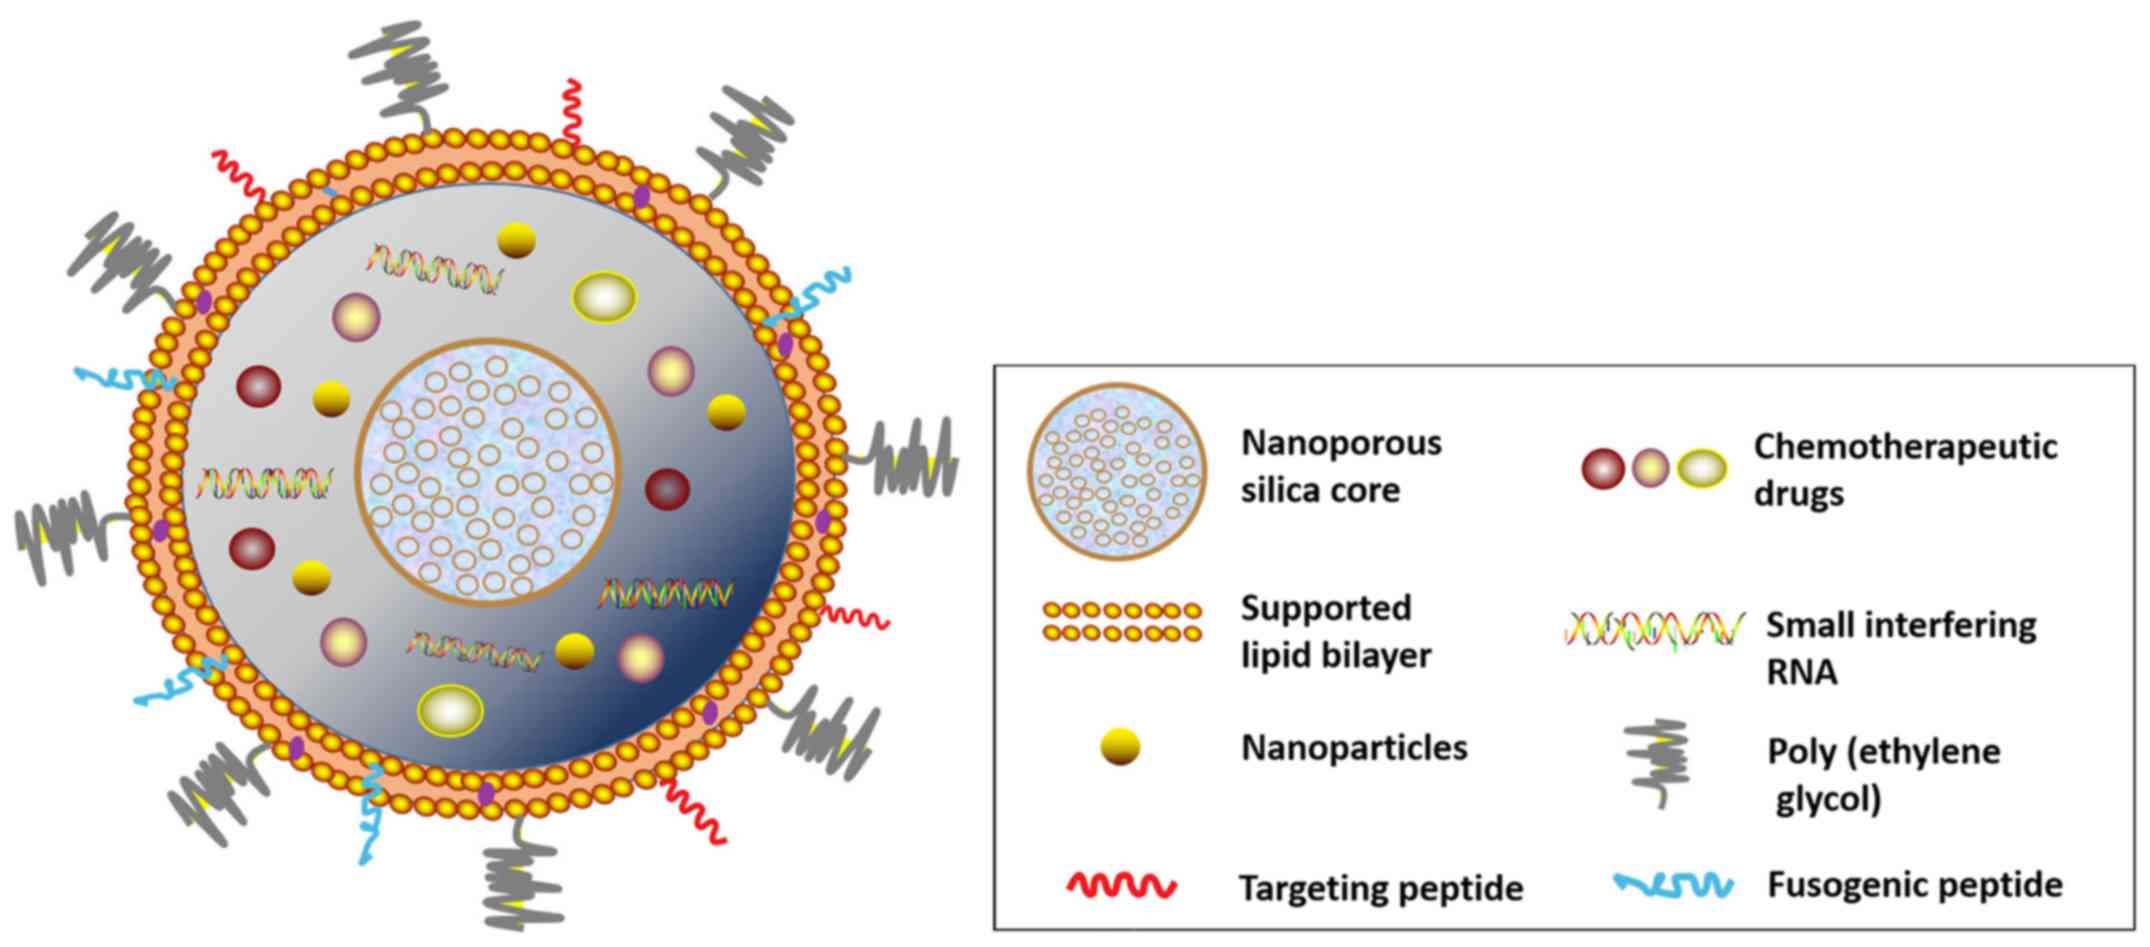 Cancer drug delivery in the nano era: An overview and perspectives